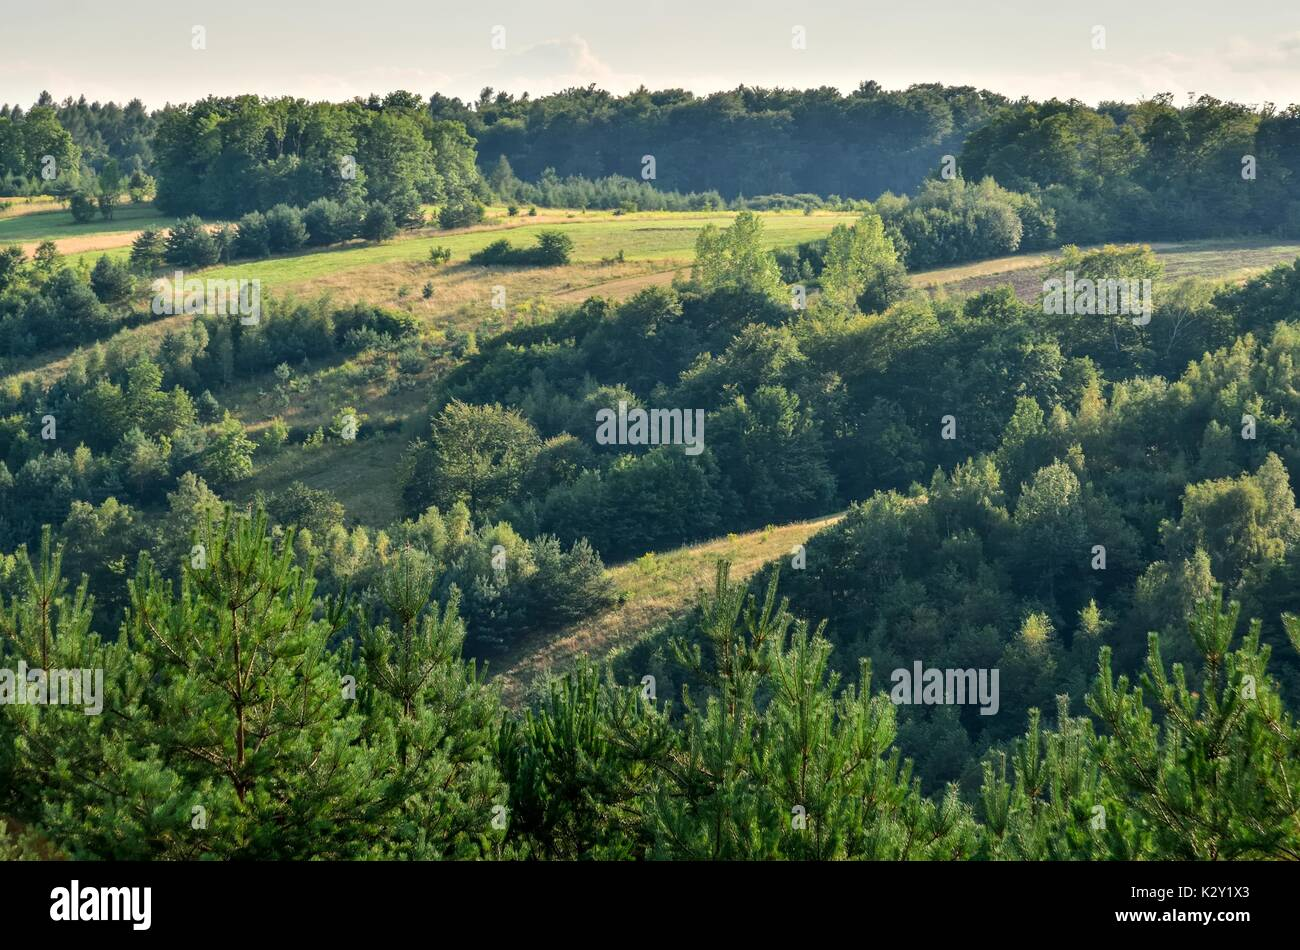 Beautiful summer landscape. Beautiful green hills in the Jurassic valley. - Stock Image